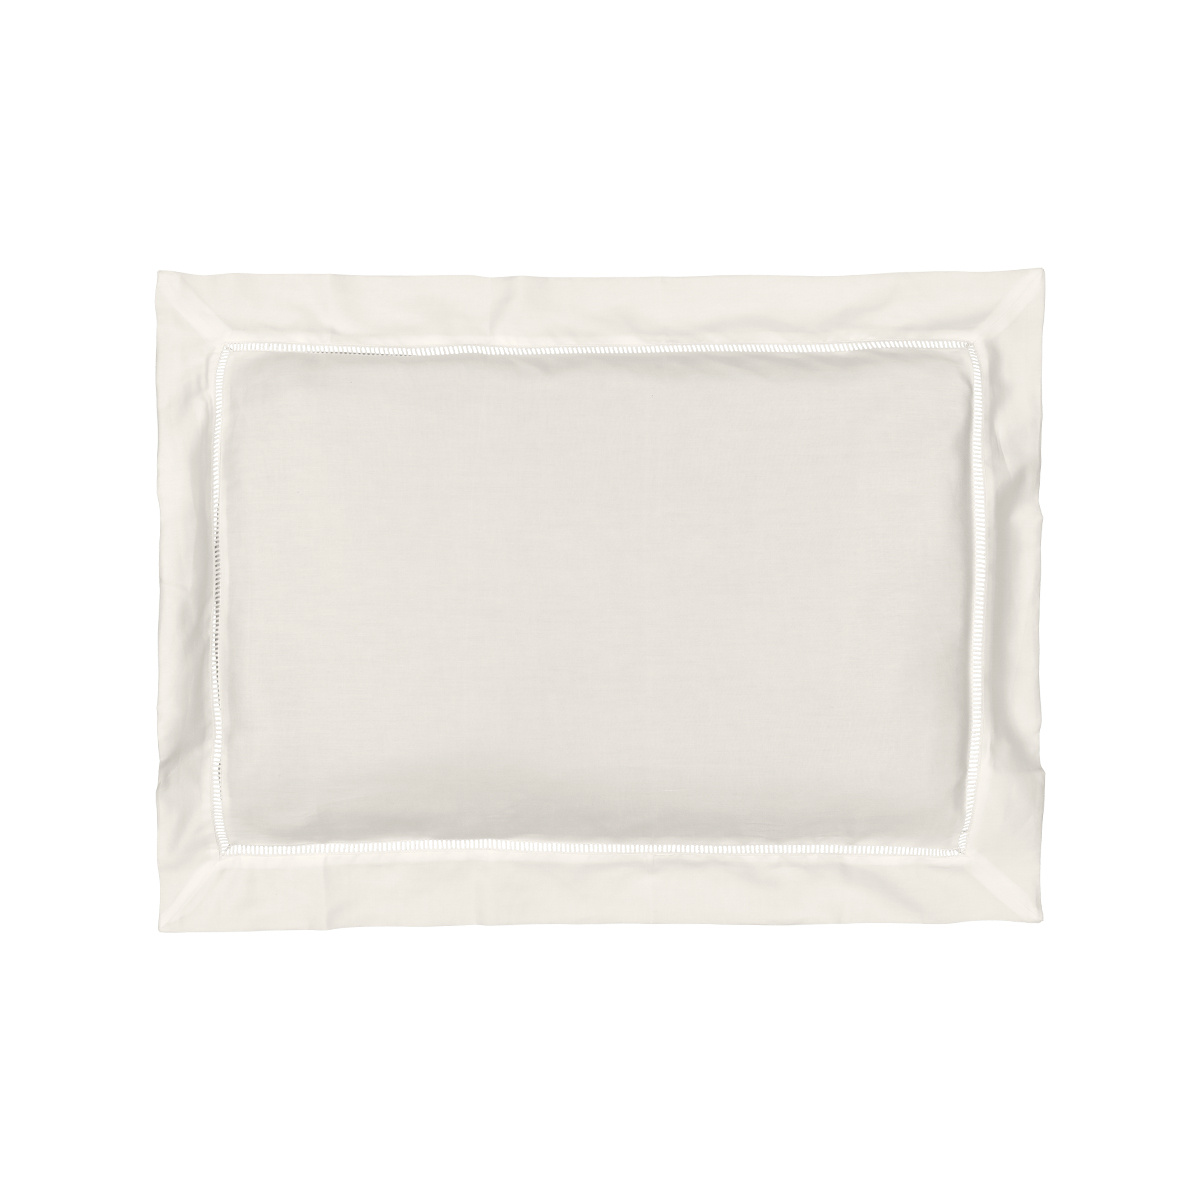 Venezia Pillow Case, Cream White